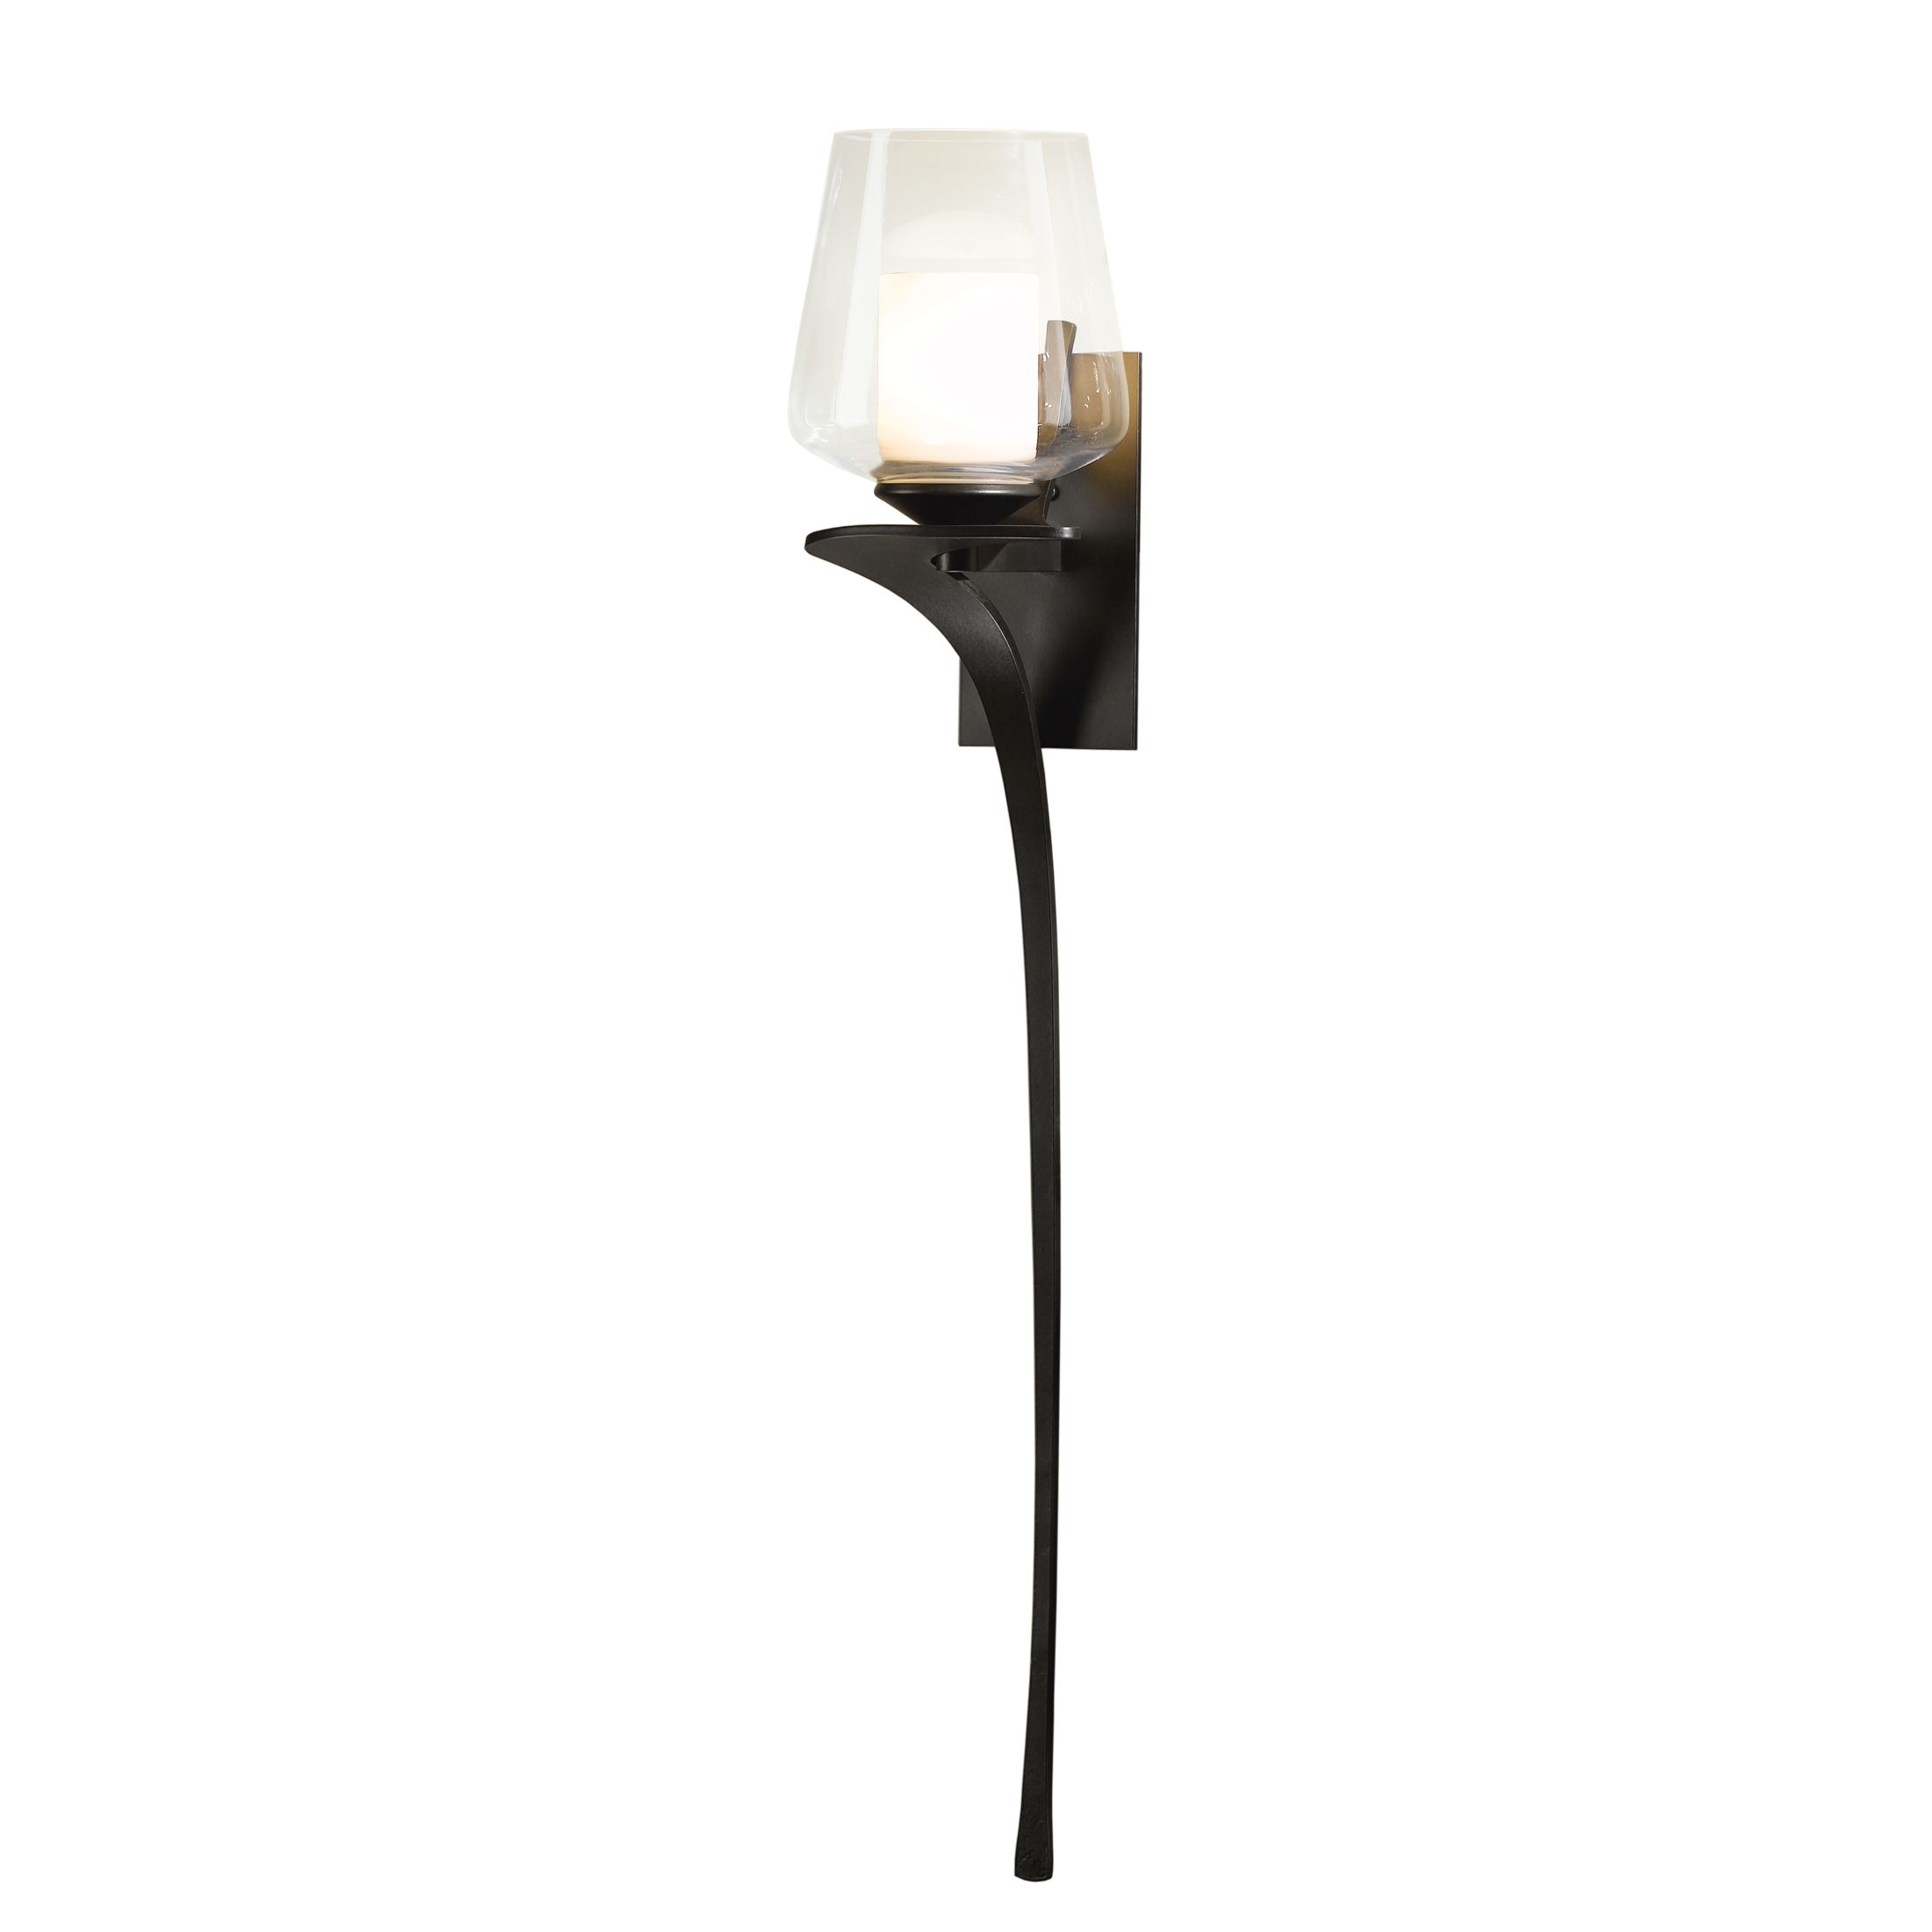 Thumbnail for Antasia Double Glass 1 Light Sconce